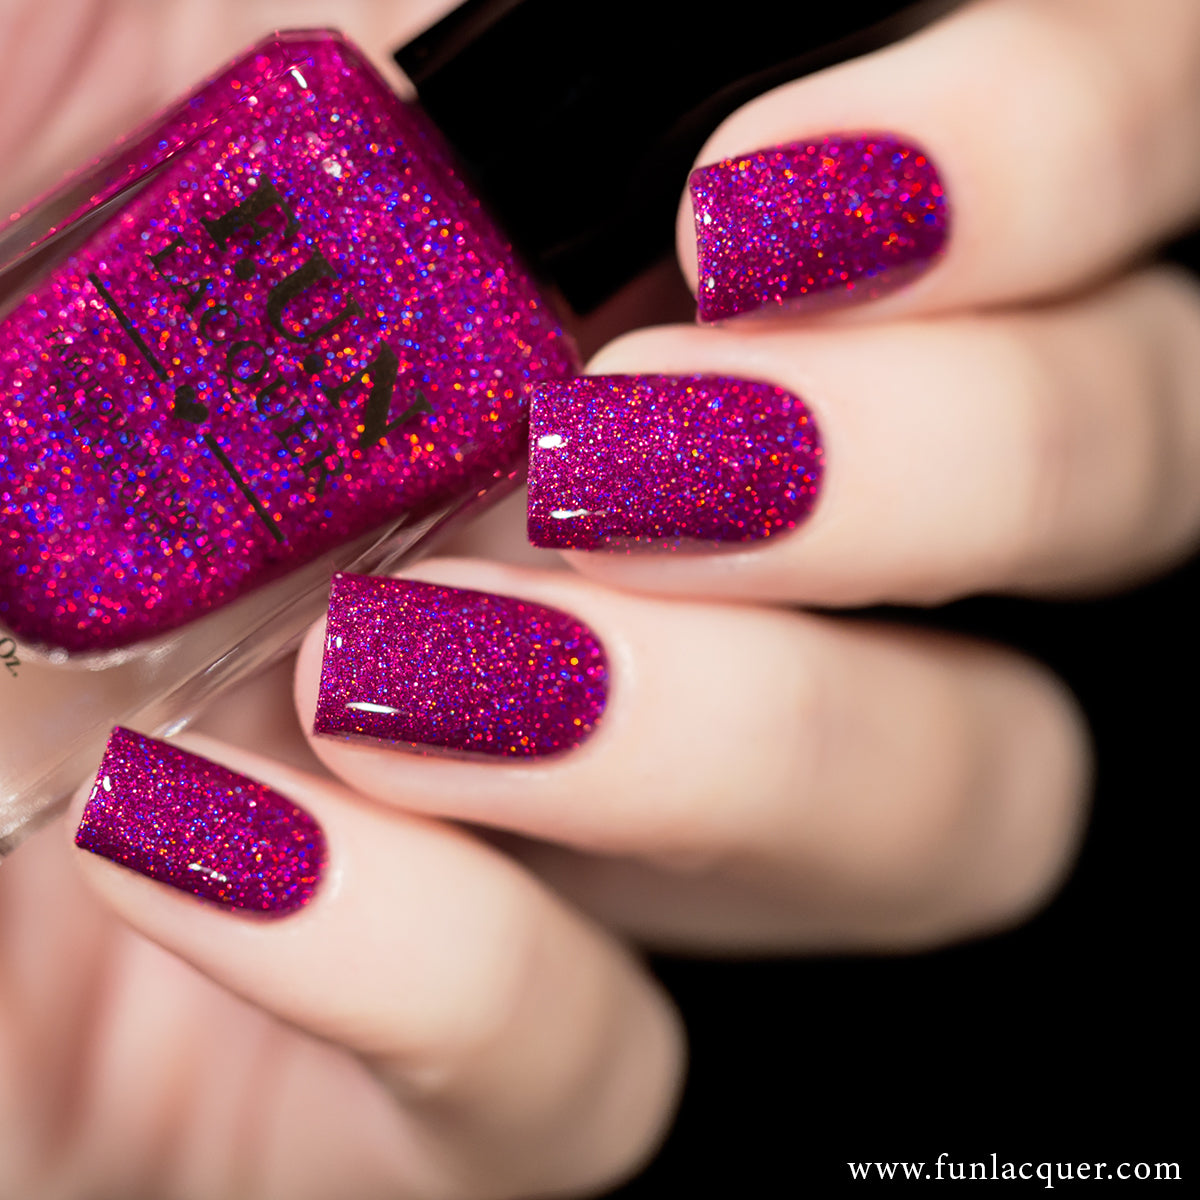 *PRE-SALE* F.U.N Lacquer - Love Potion